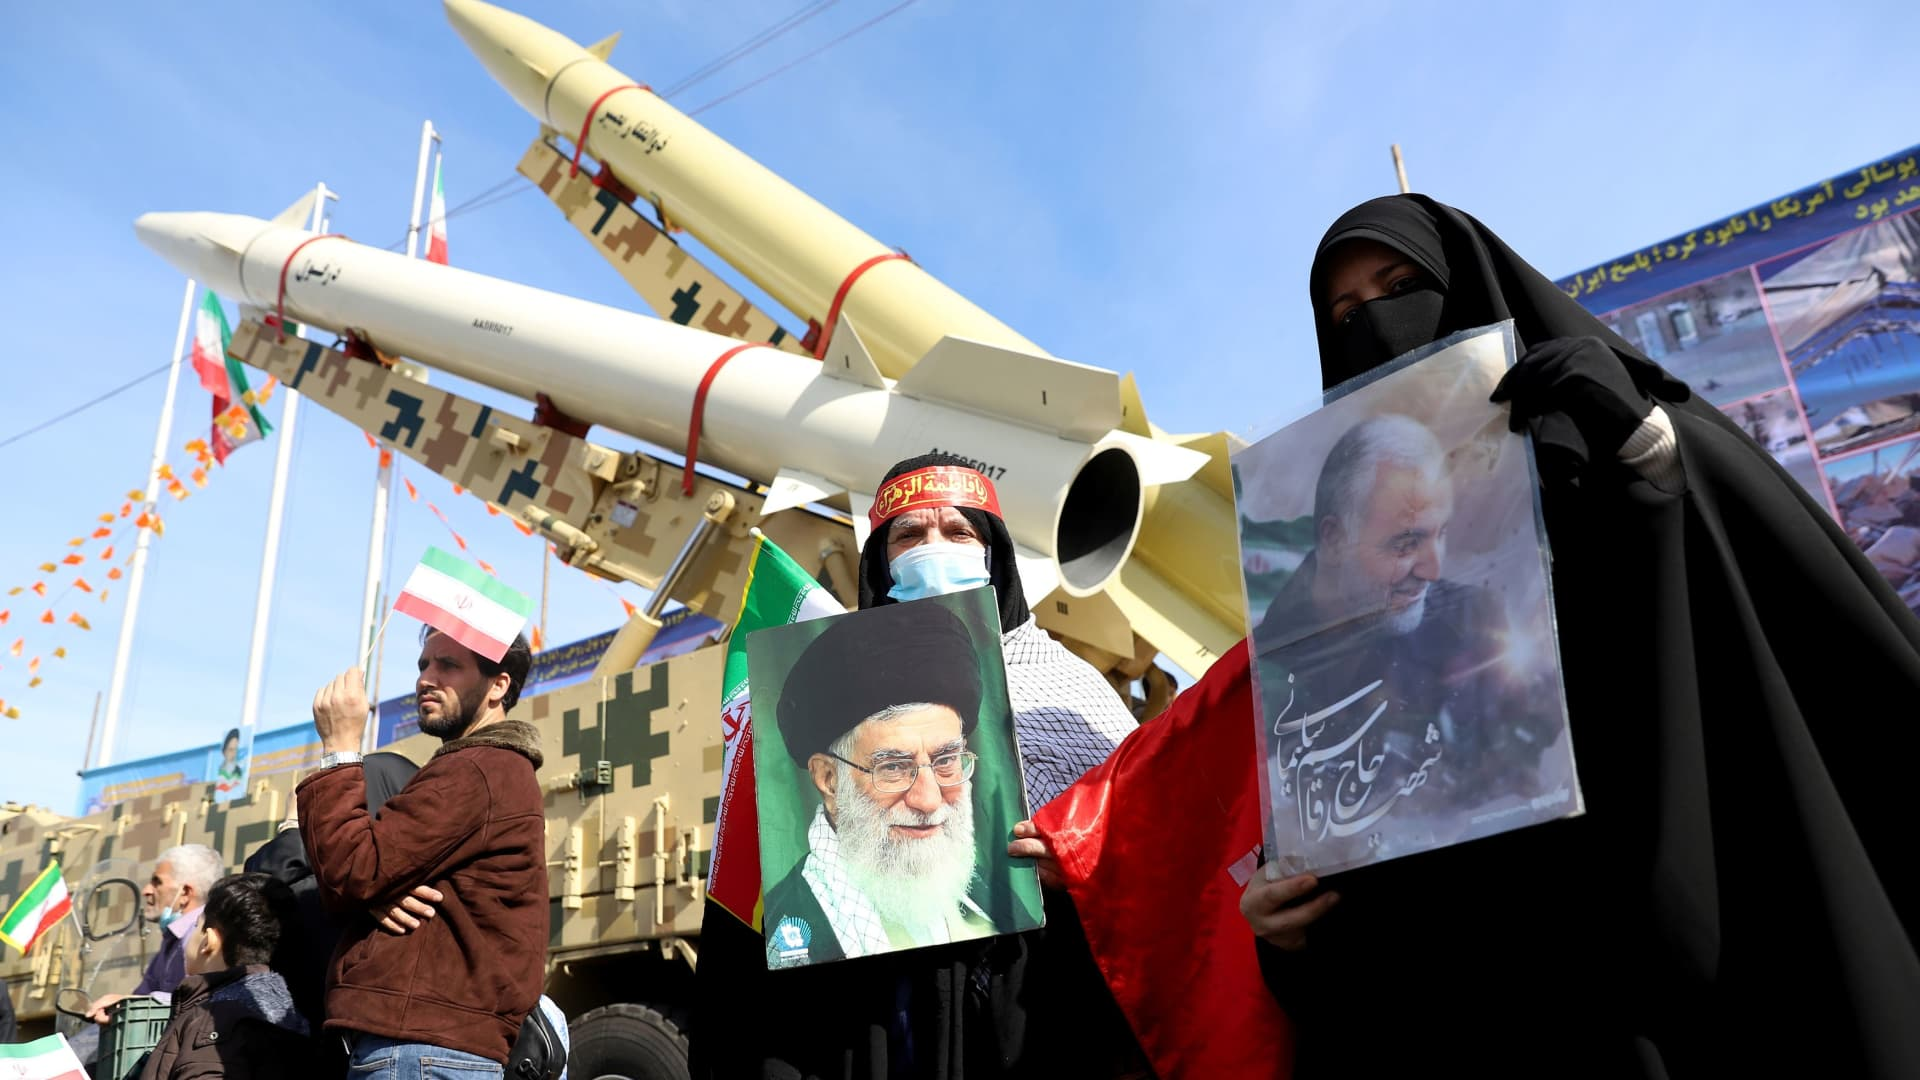 Iranian women hold pictures of the Supreme Leader Ayatollah Ali Khamenei and the late Iranian Major-General Qassem Soleimani, during the celebration of the 42nd anniversary of the Islamic Revolution in Tehran, Iran February 10, 2021.